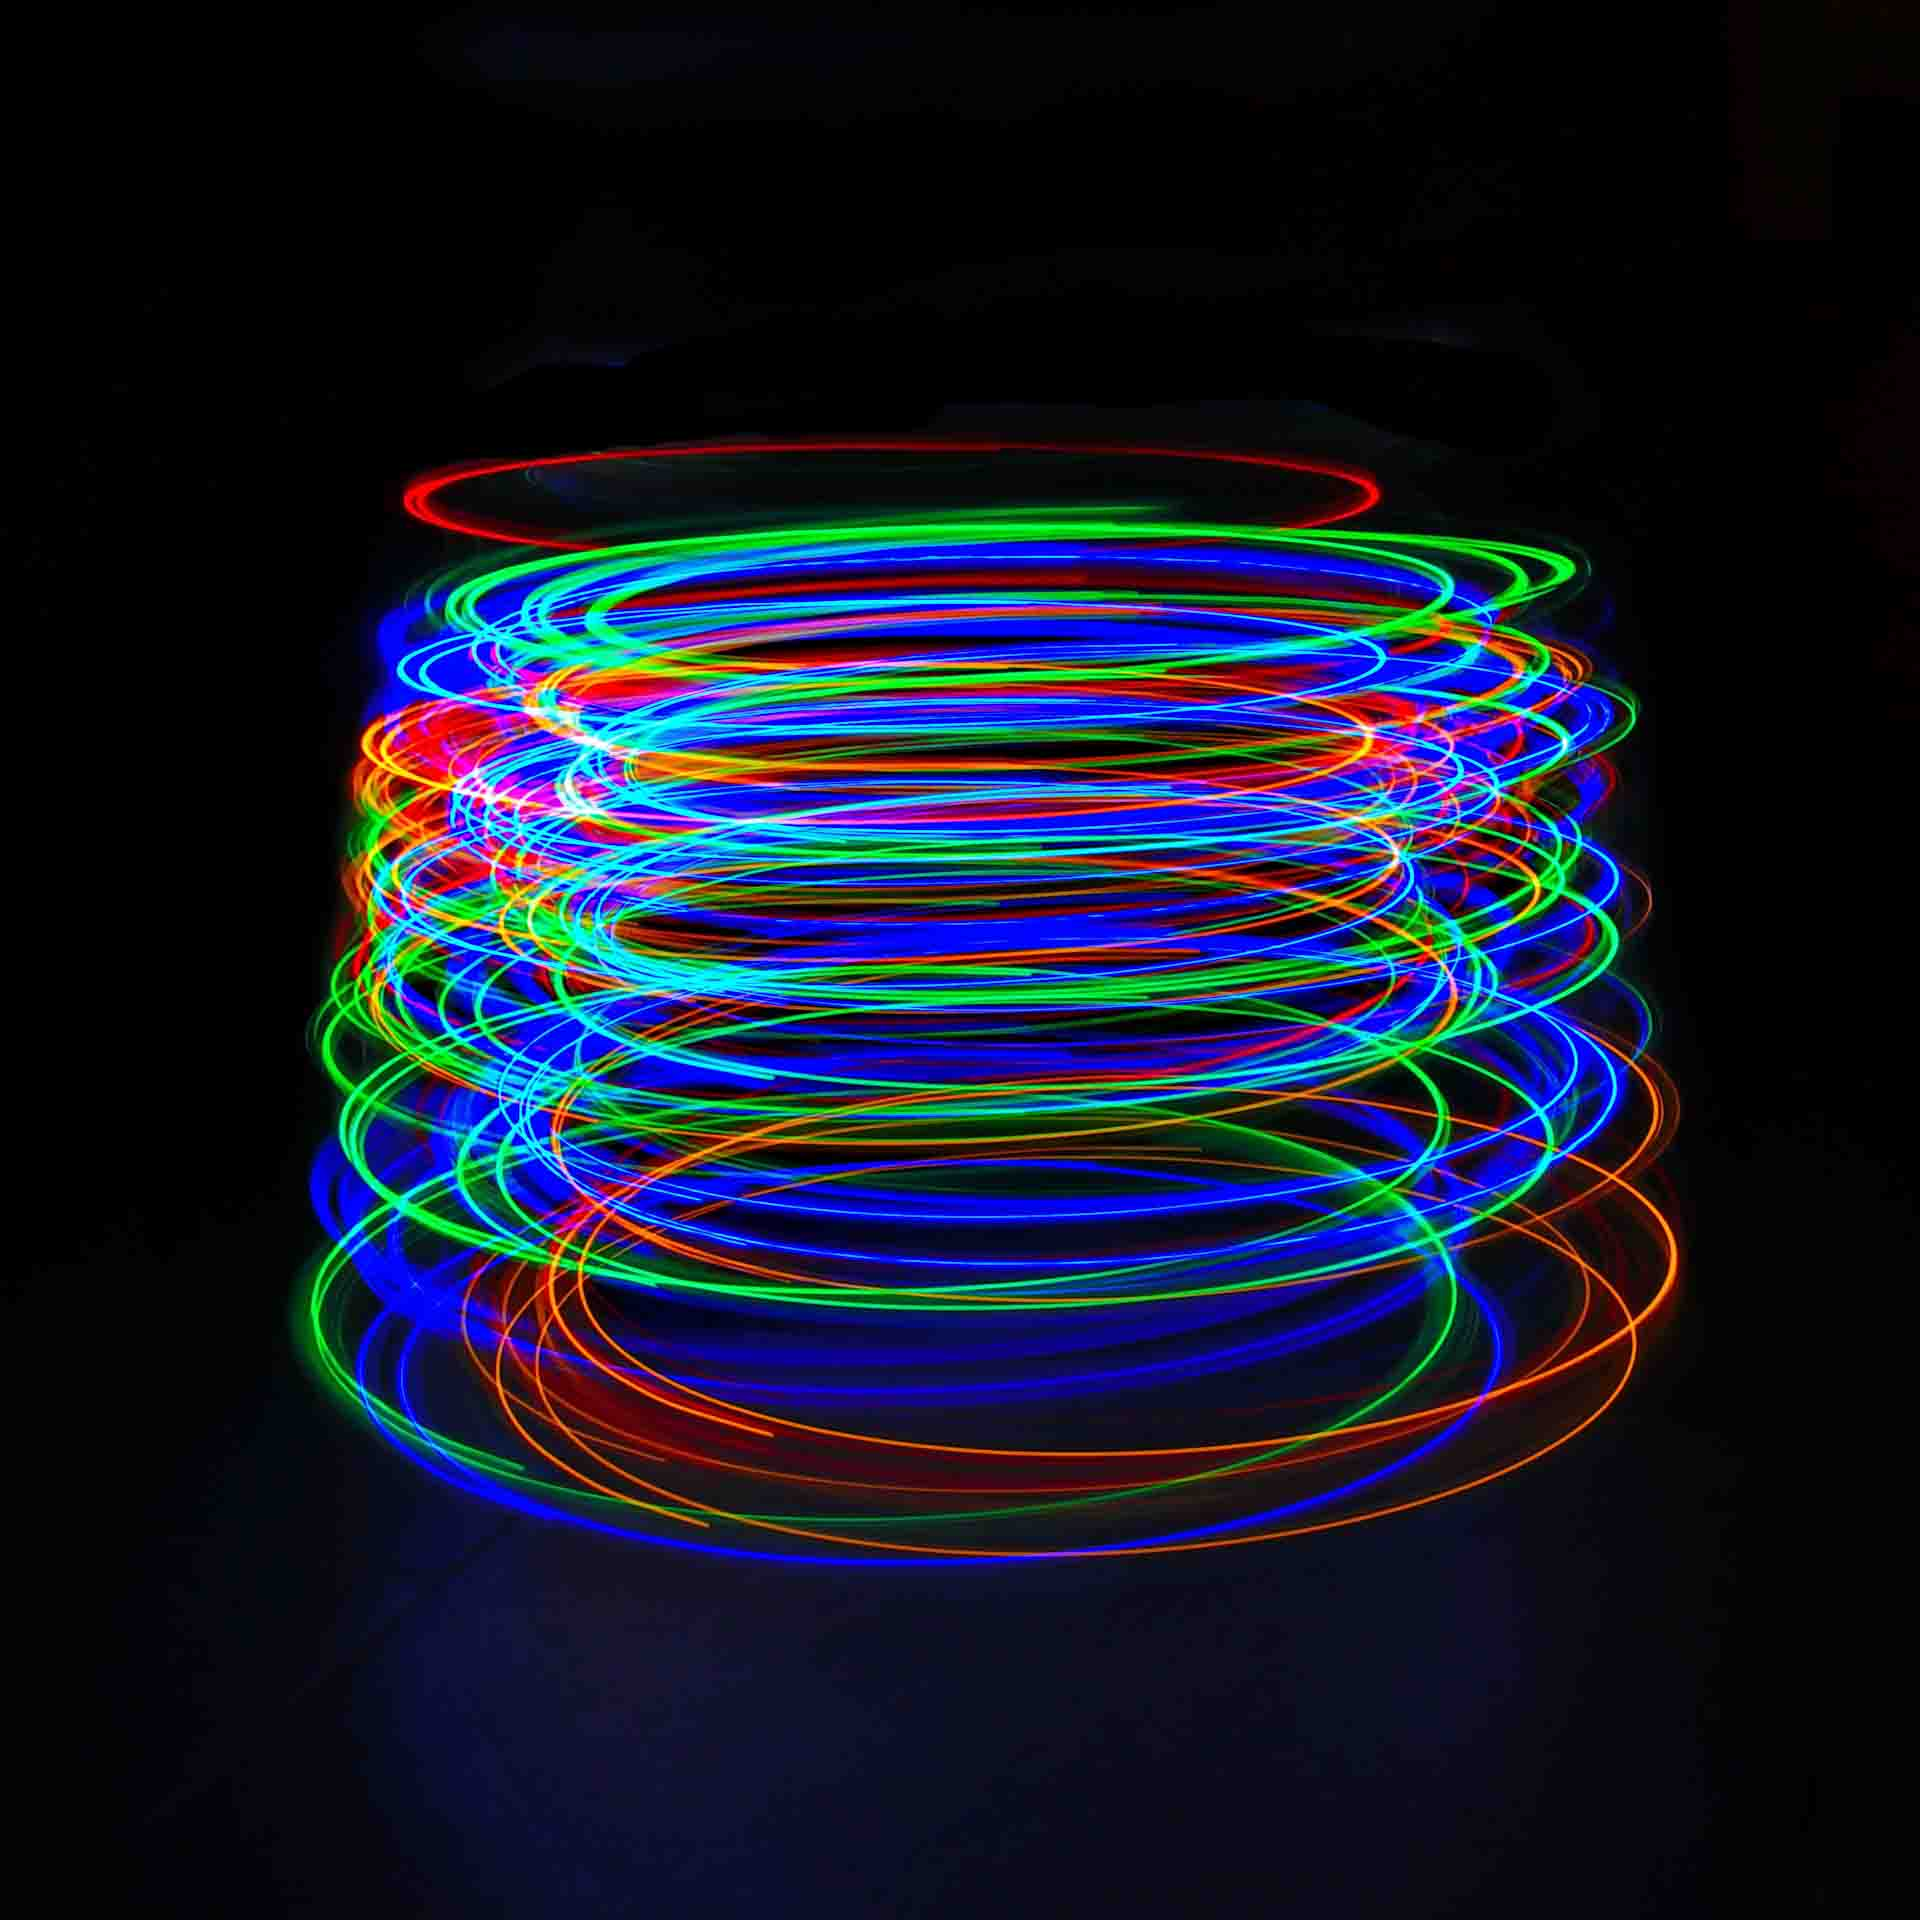 Lightpainting at home